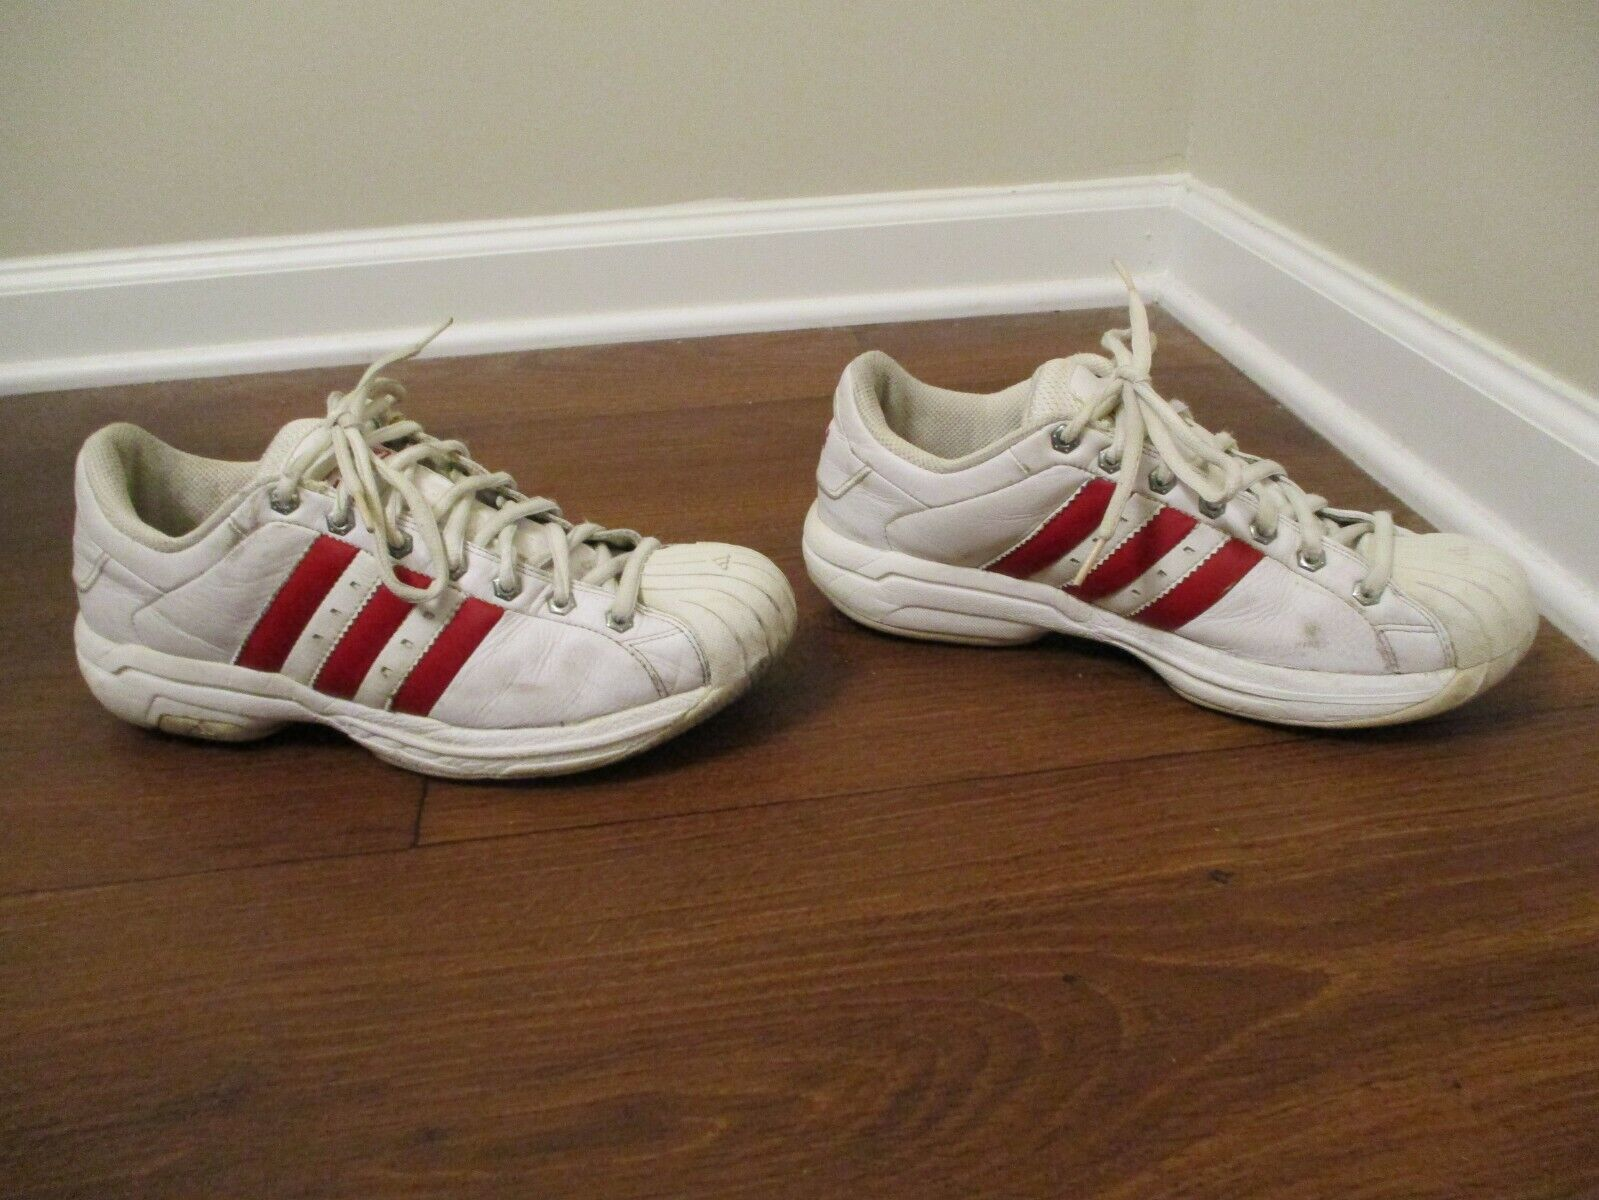 Classic 2002 Used Worn Size 10 Adidas Superstar 2G shoes White Red Chrome SS2G